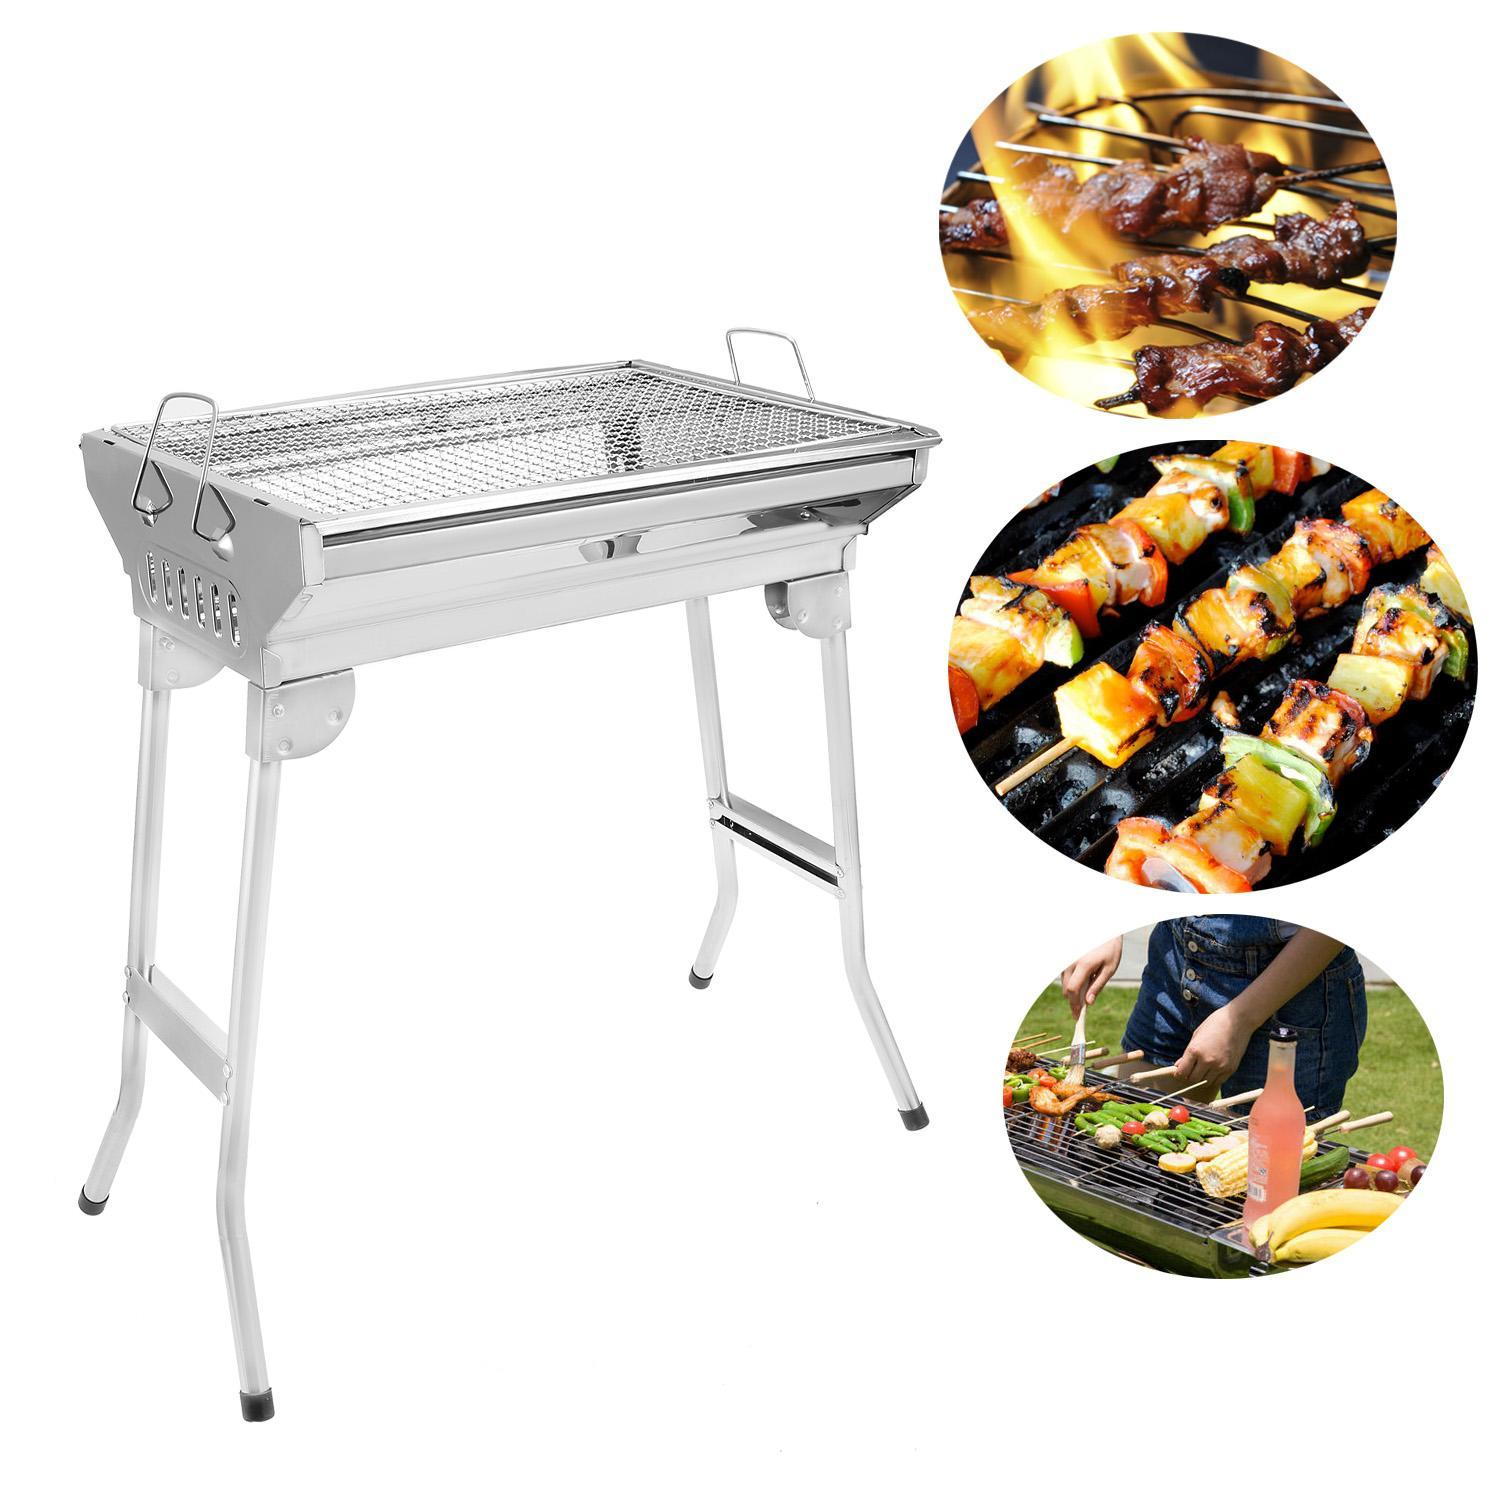 Folding Barbecue Grill Outdoor Picnic And Home Charcoal BBQ Grill Stainless Steel